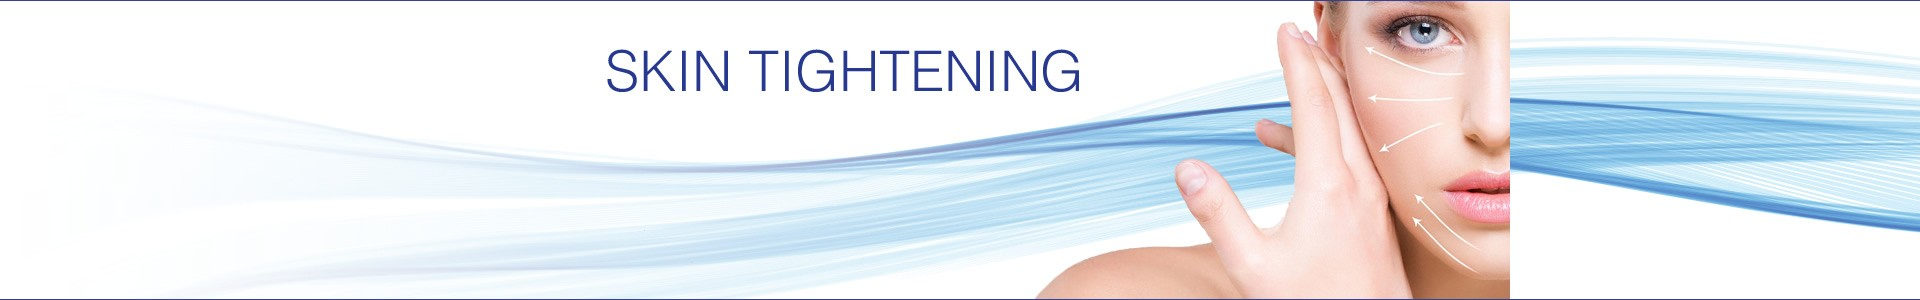 Skin Tightening - Smooth Skin Health Centre Hamilton